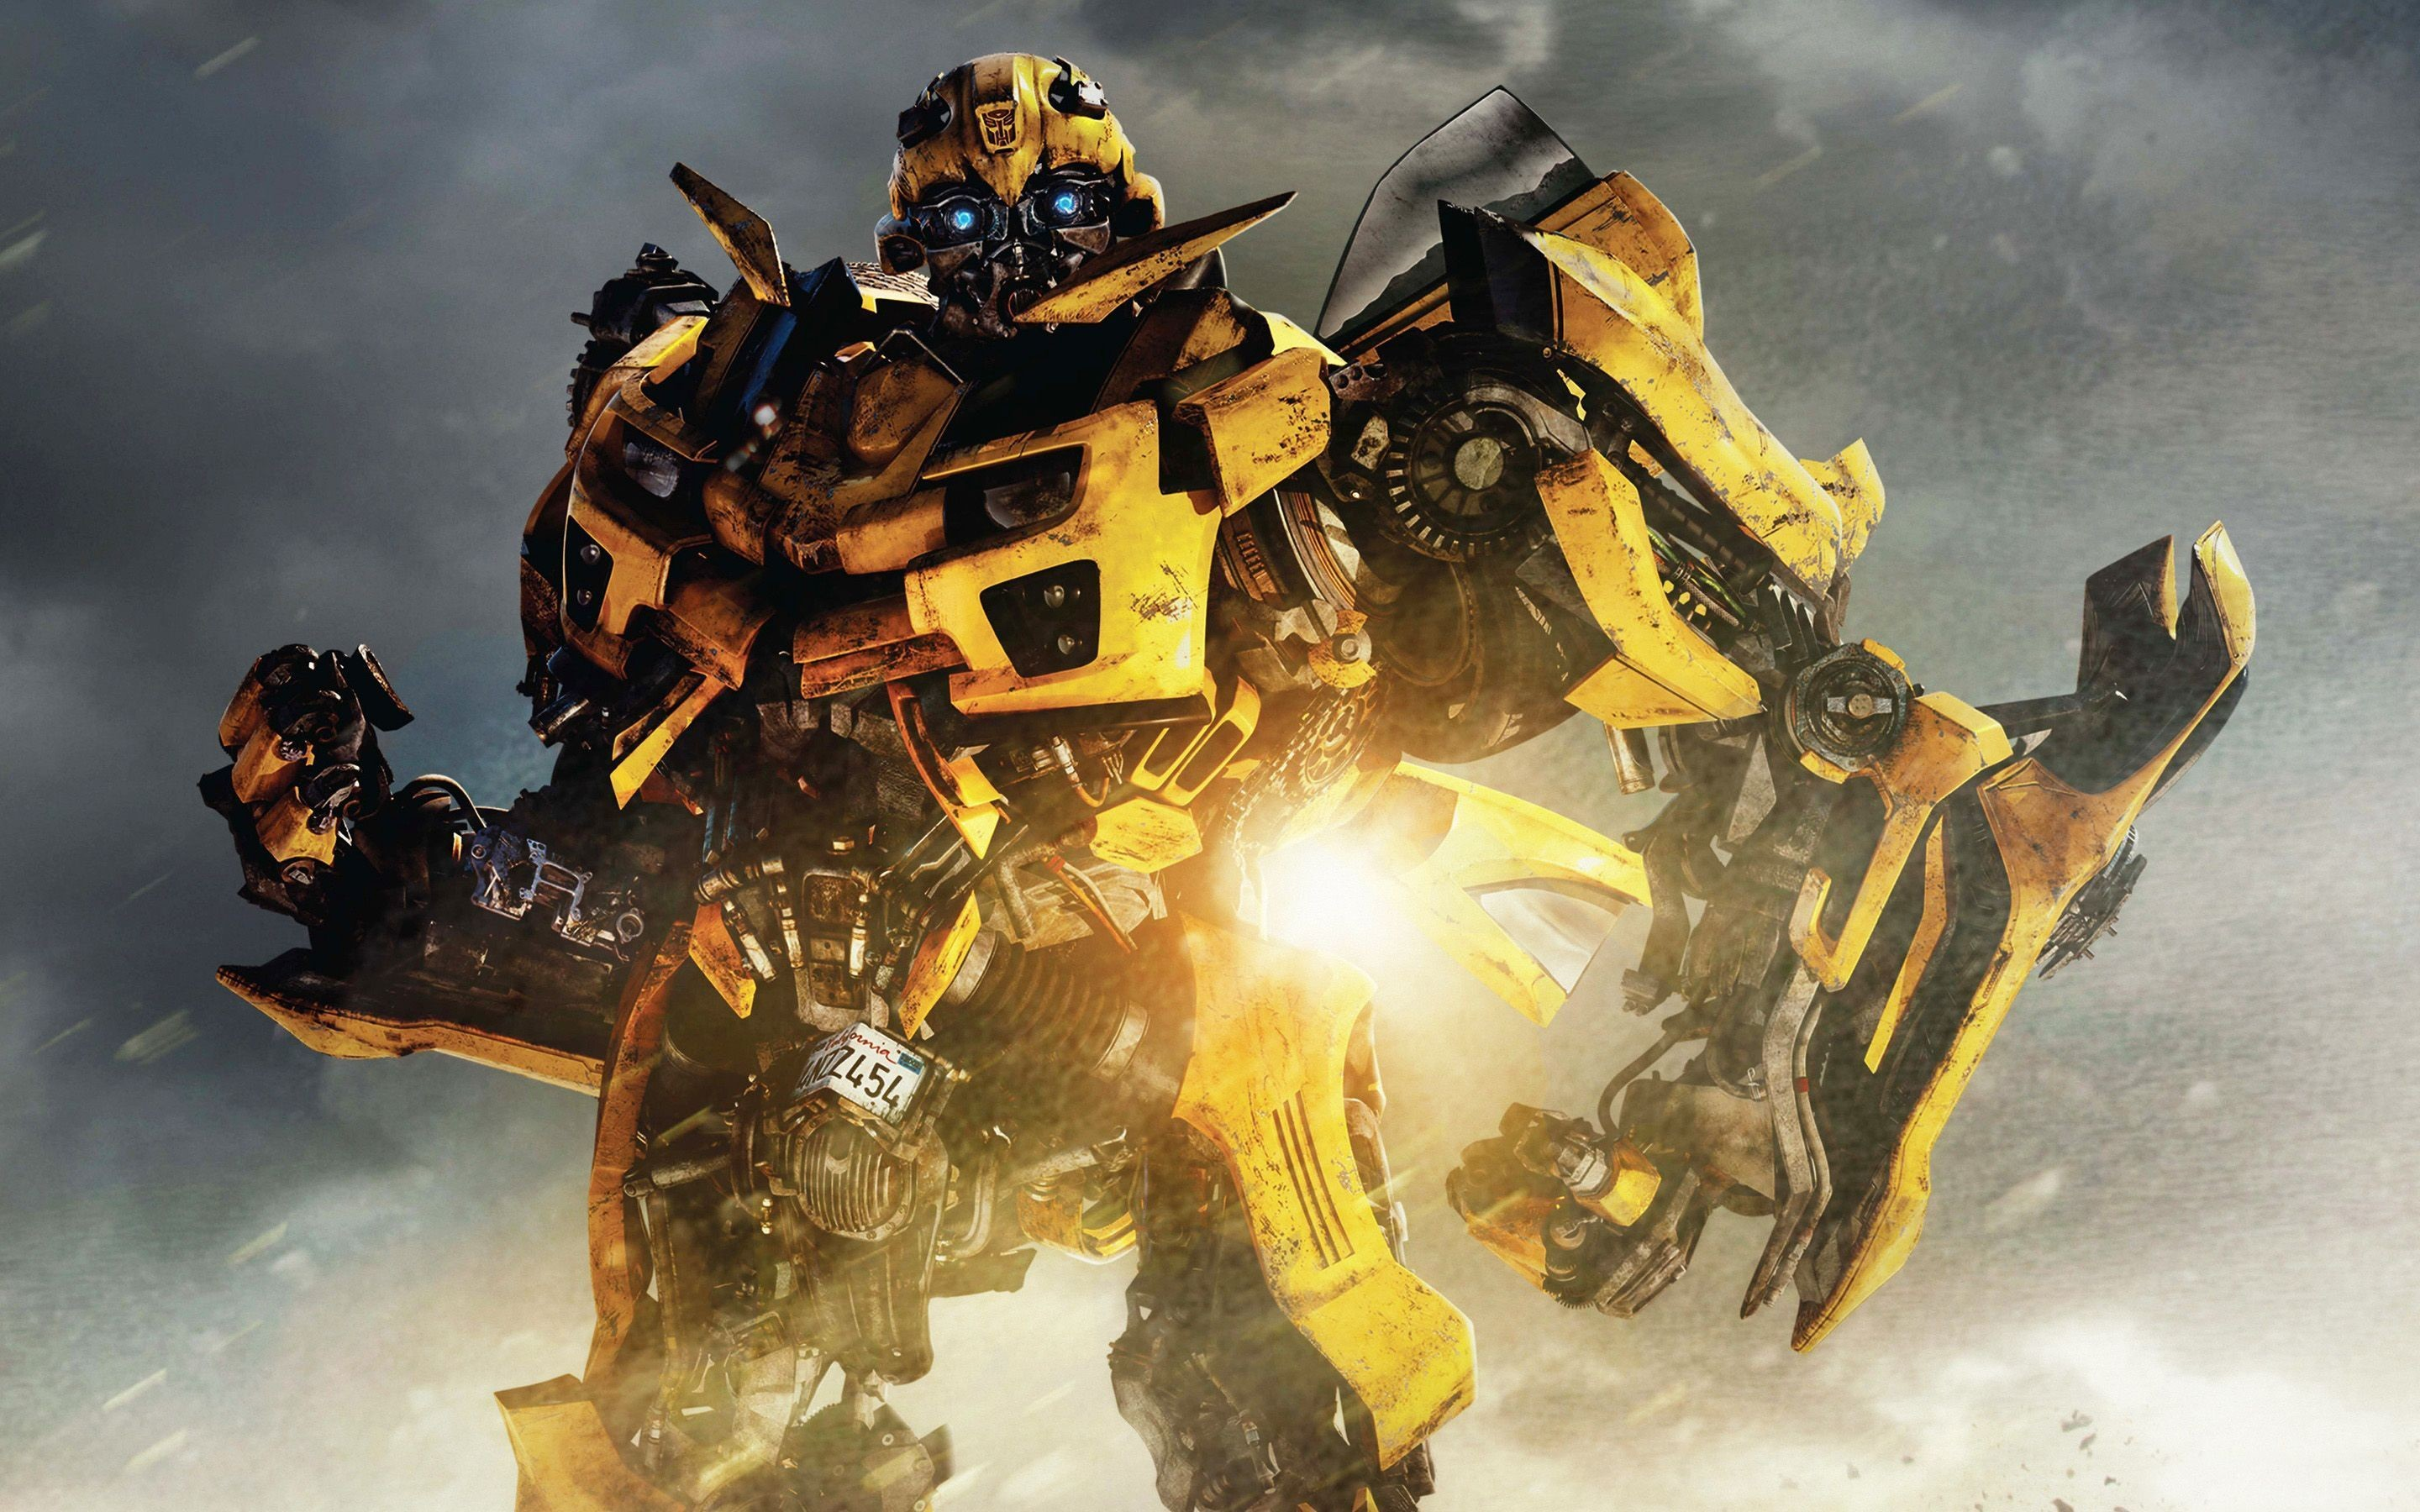 2880x1800 wallpaper.wiki-Bumblebee-Transformer-Wallpaper-Free-Download-PIC-